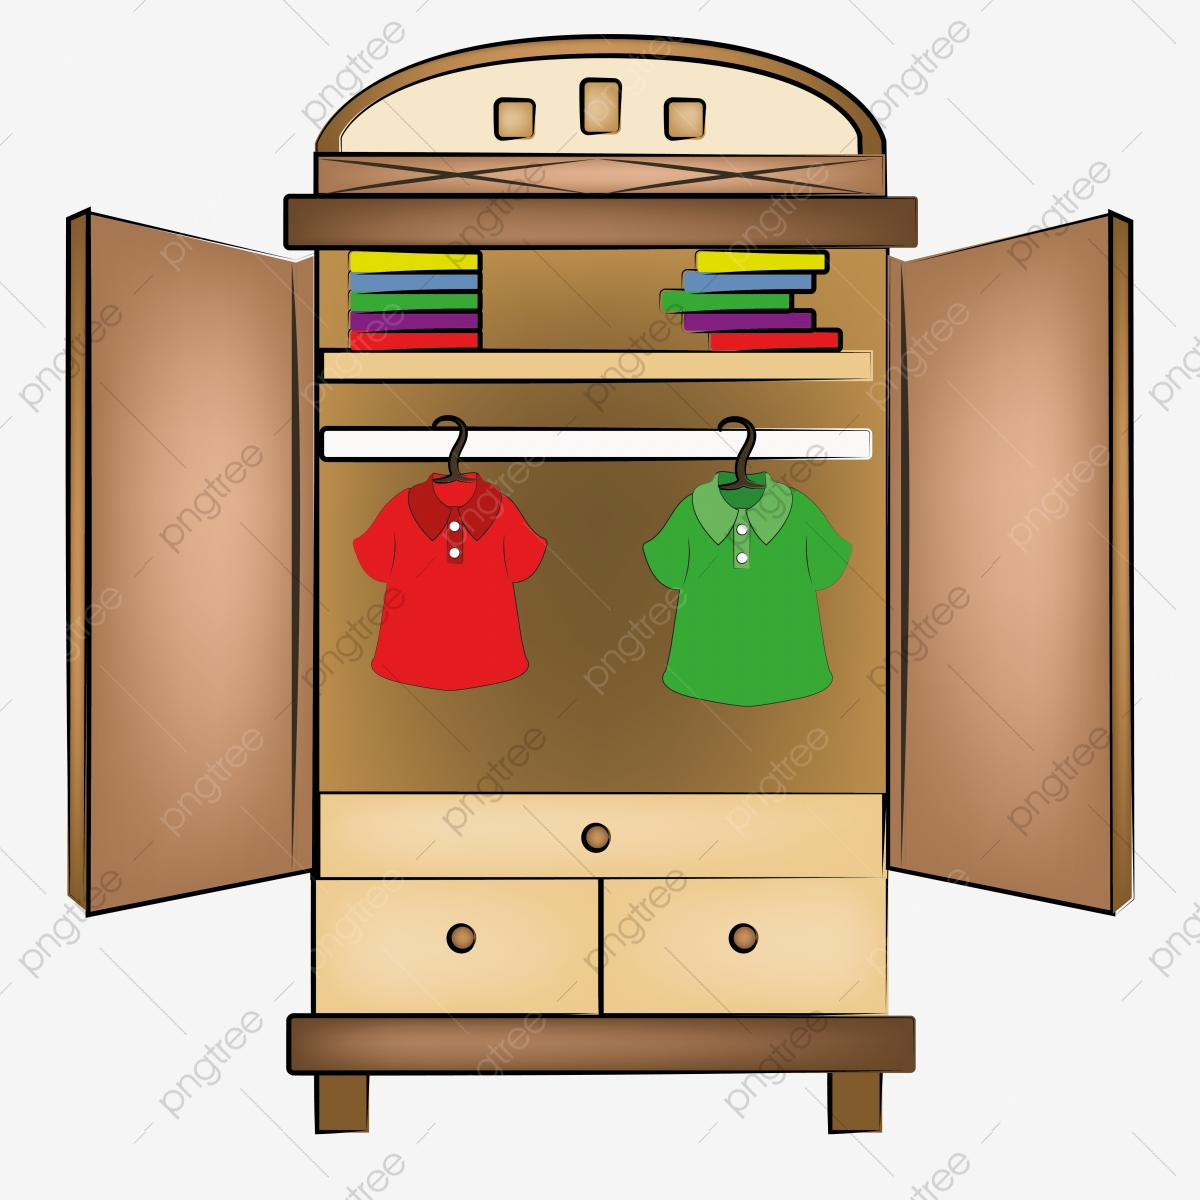 Open Cupboard Clip Art: Open Wardrobe With Clothes, Wardrobe, Open, Closet PNG And